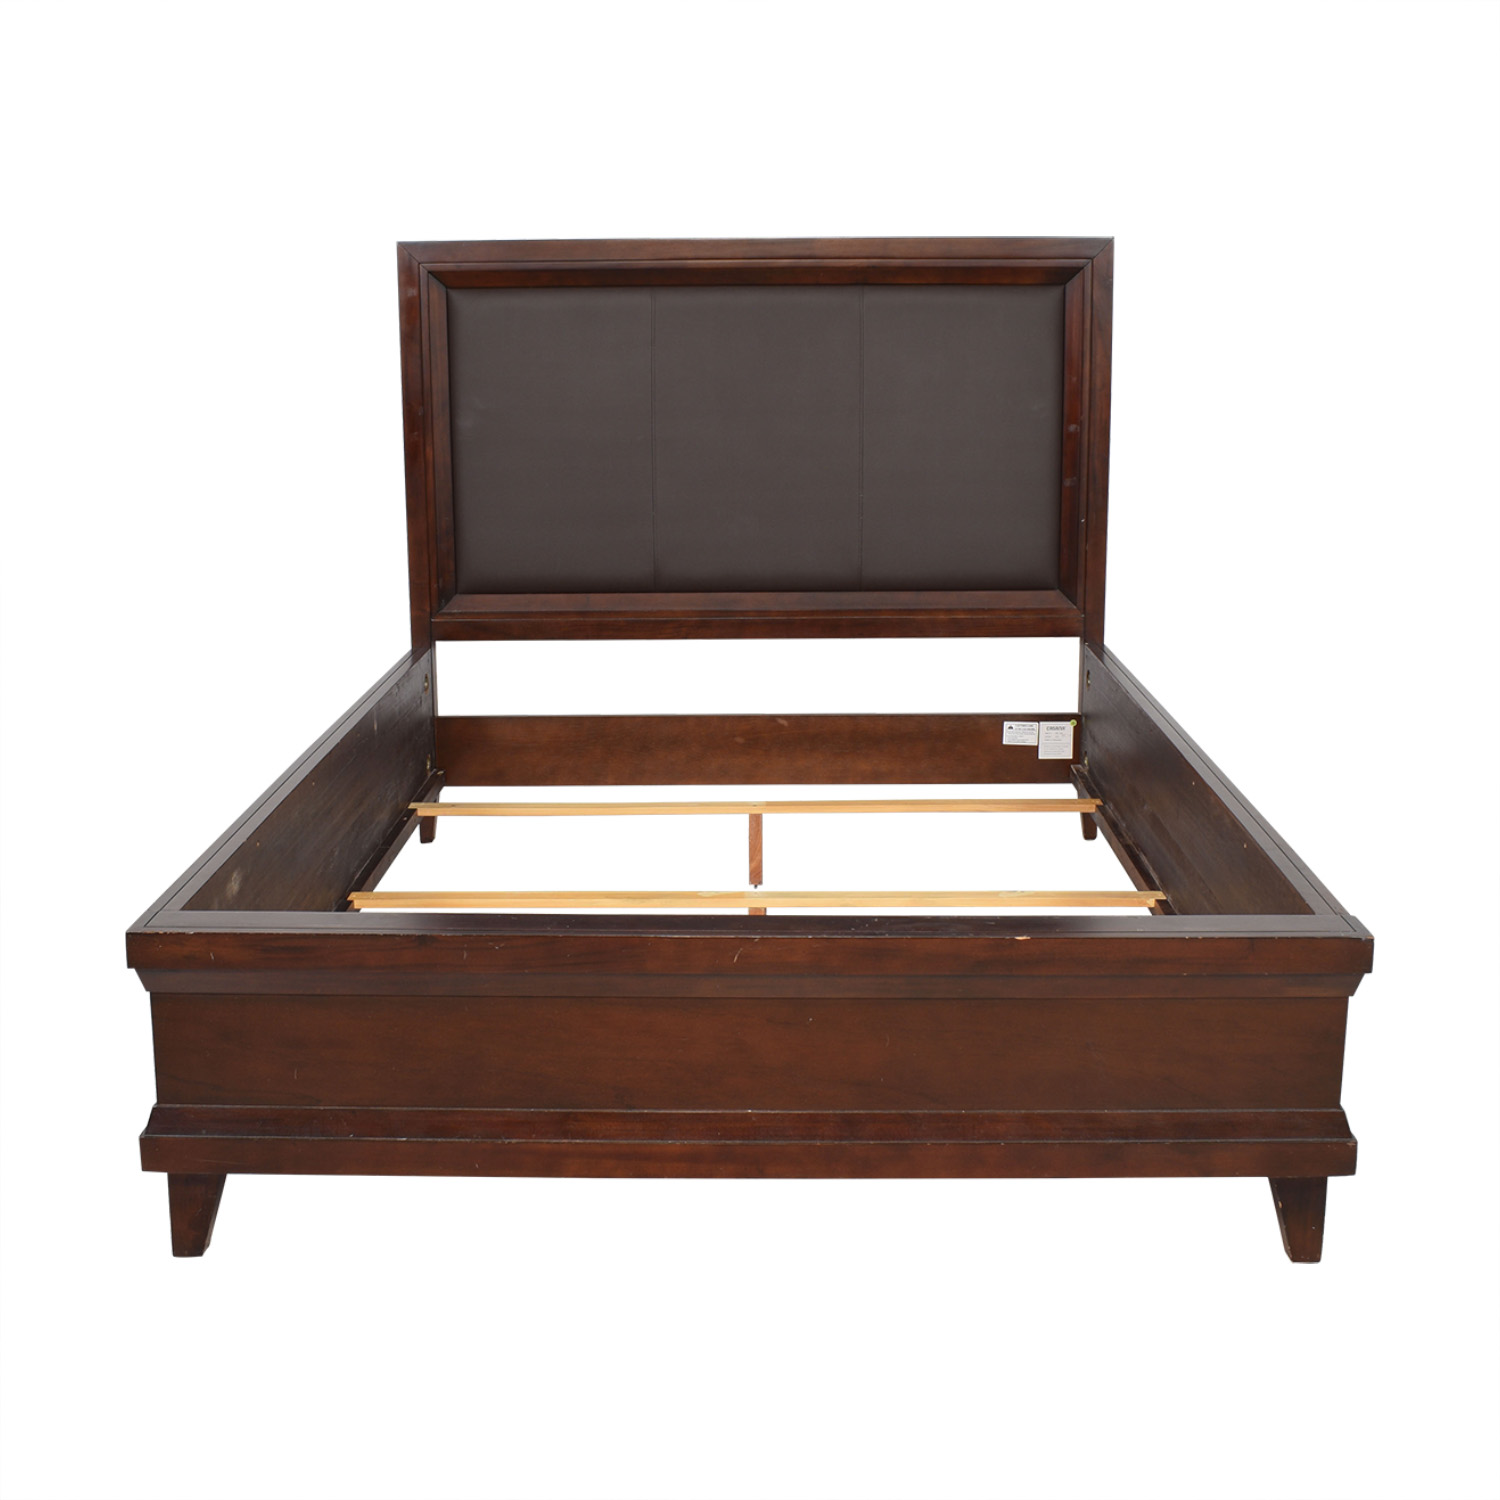 buy Casana Furniture Casana Furniture Queen Bed Frame online